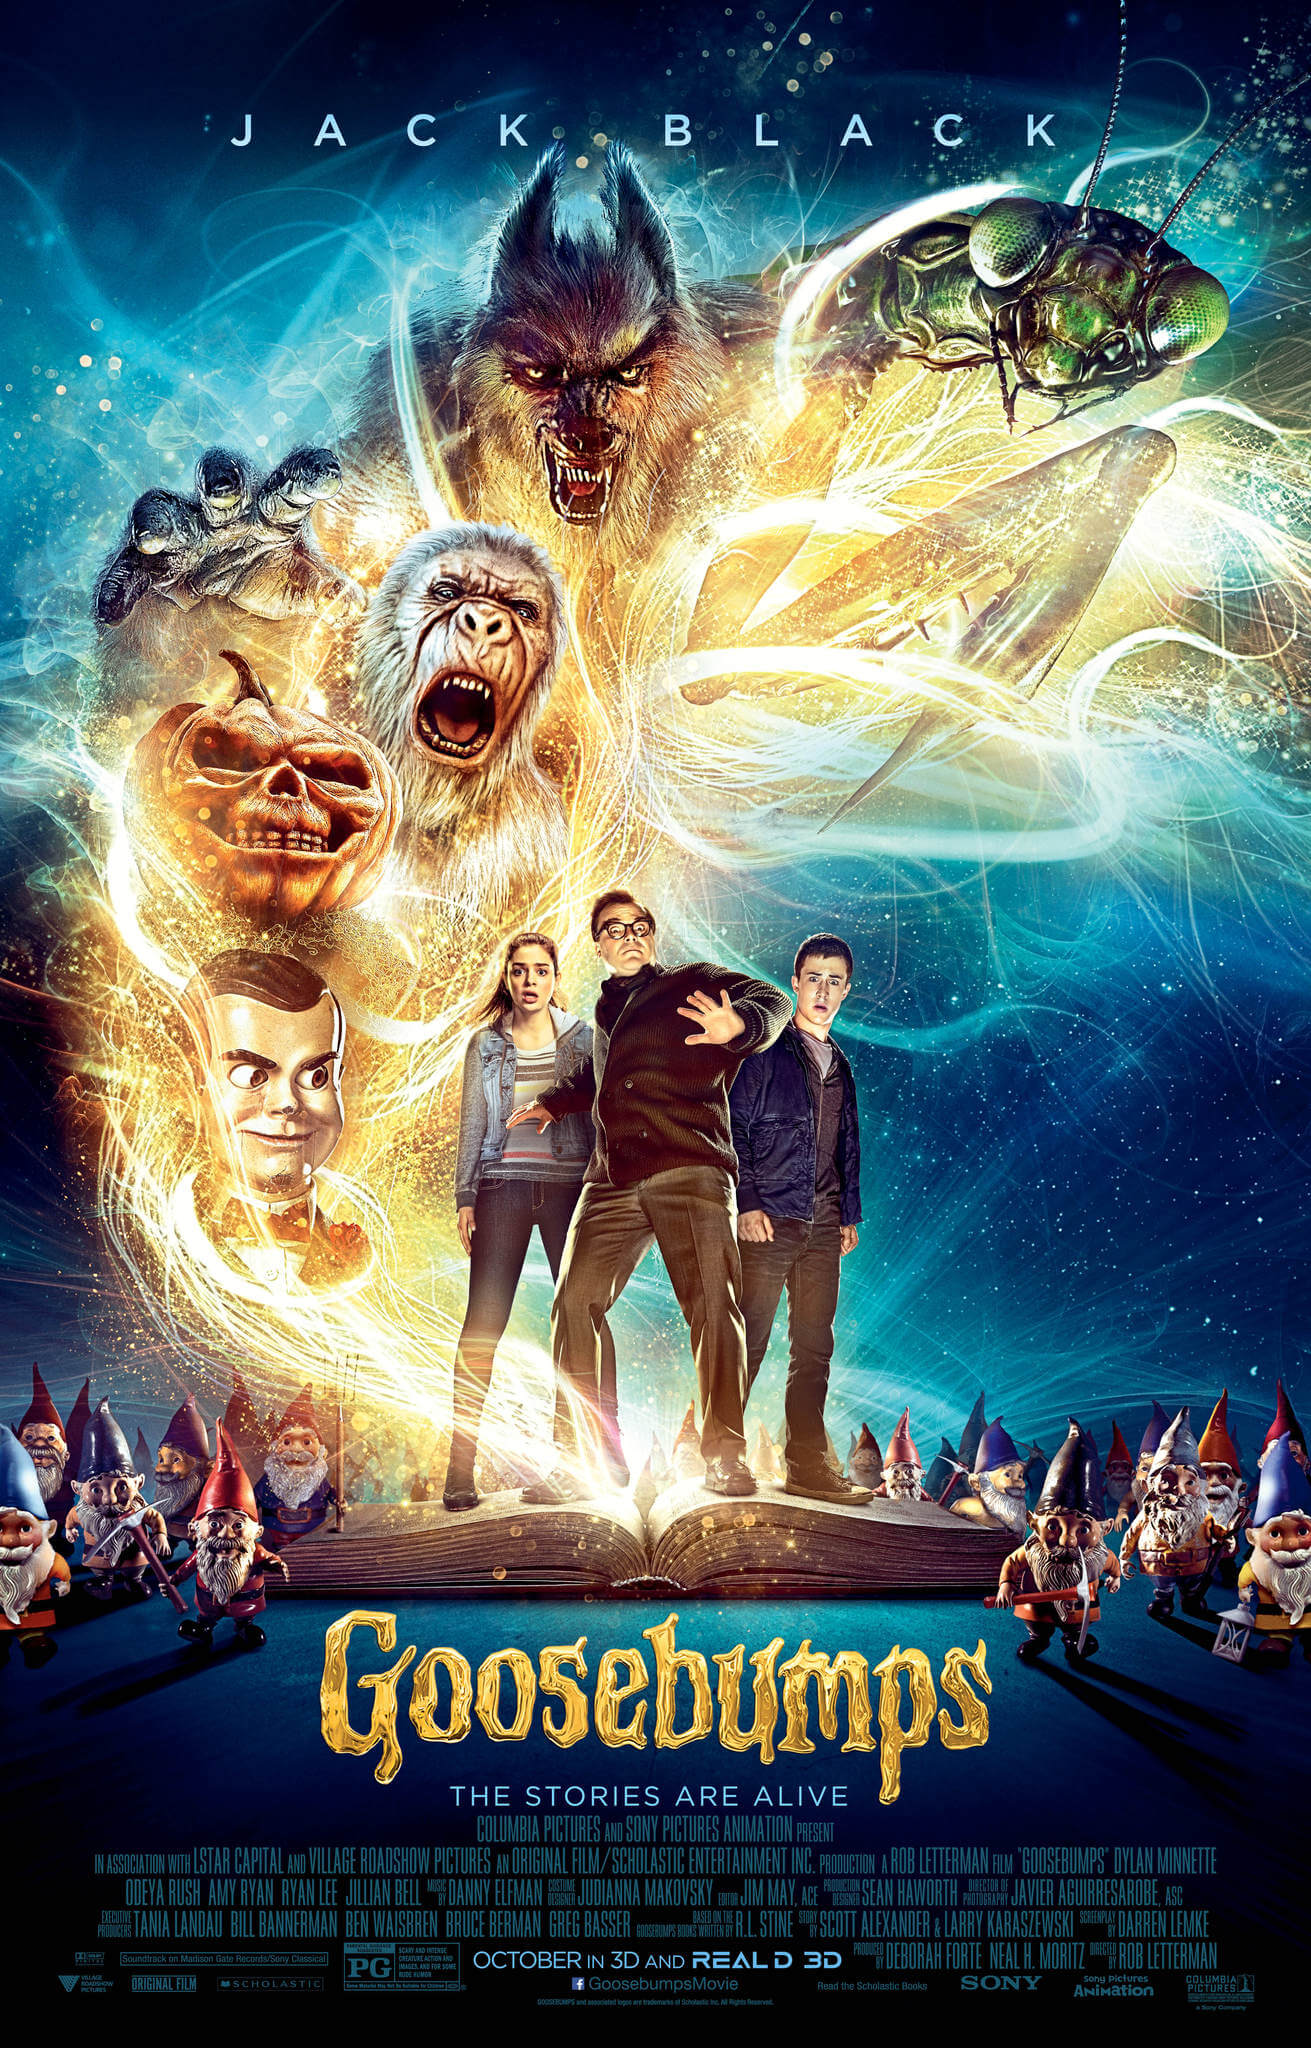 GOOSEBUMPS halloween movie